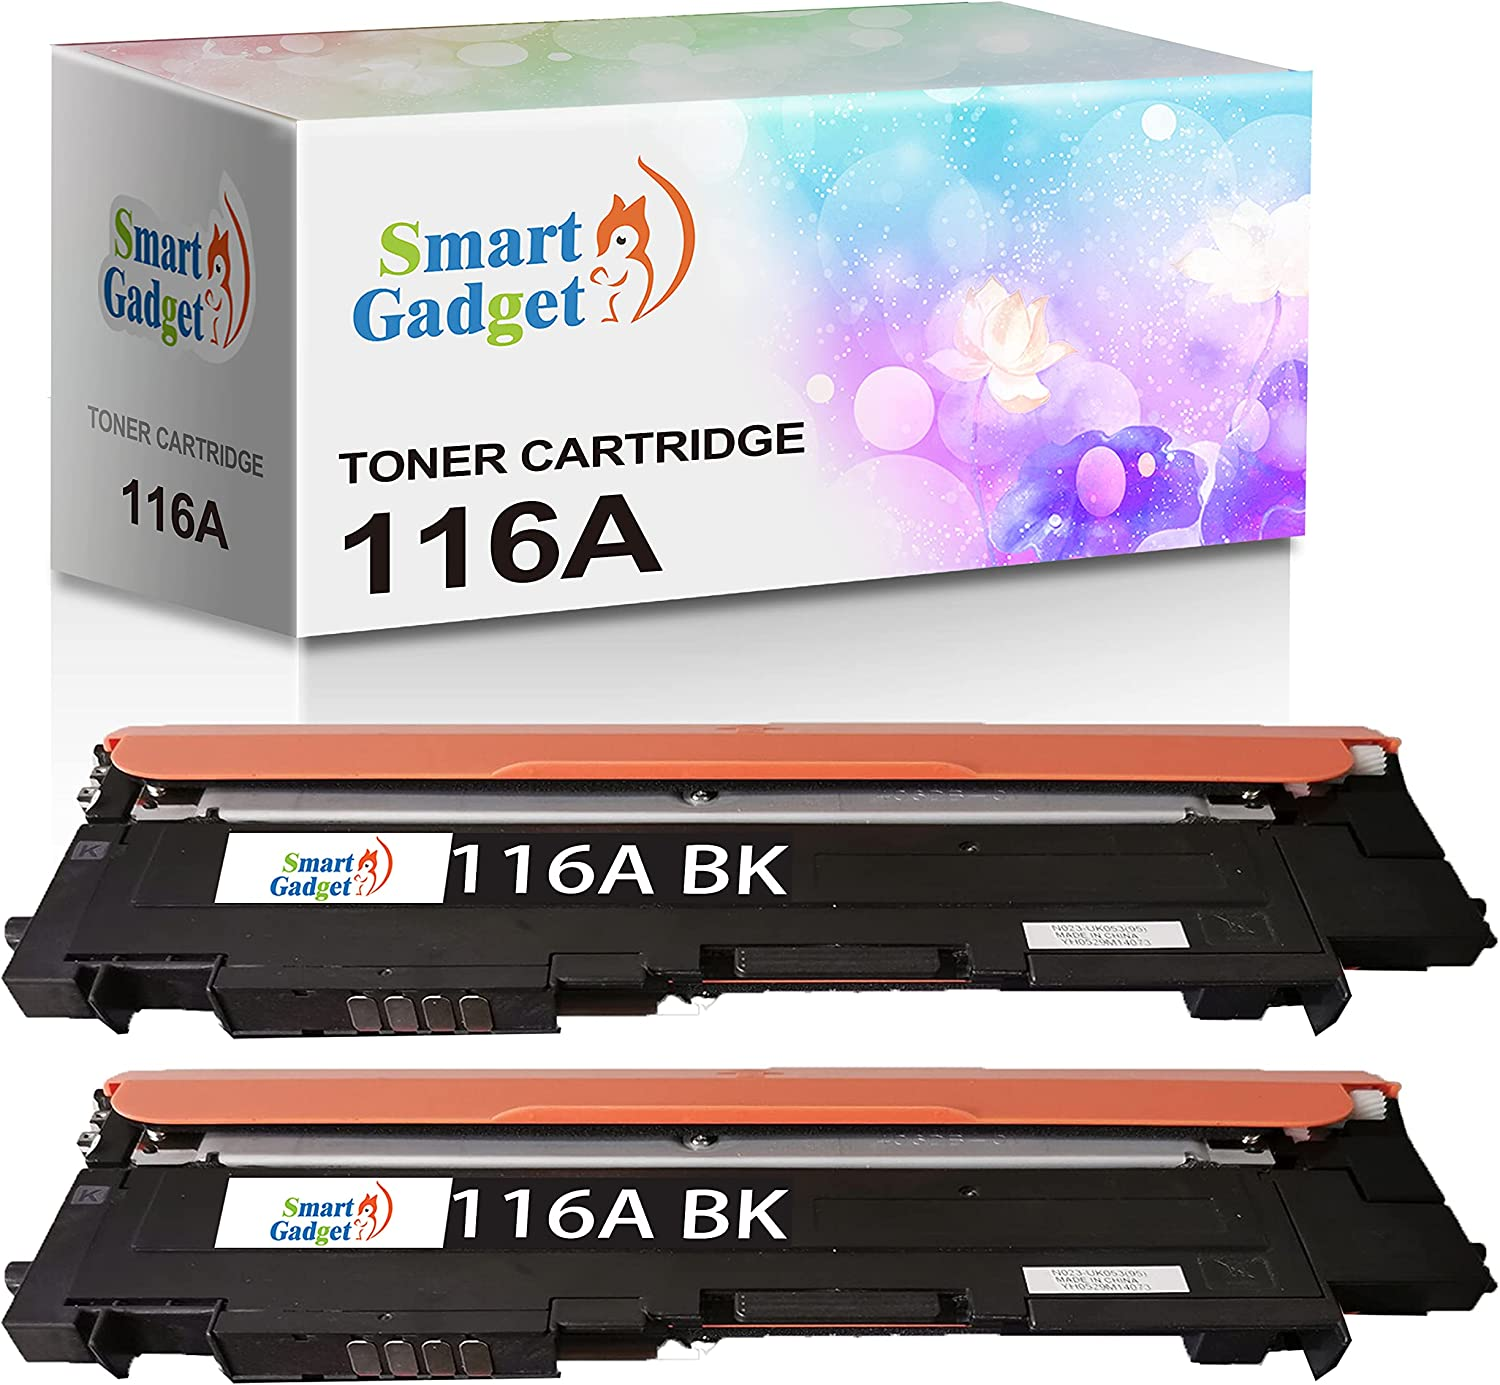 Be super welcome Smart Gadget 116A Replacement Black for Oklahoma City Mall Toner Cartridge 11 A 116